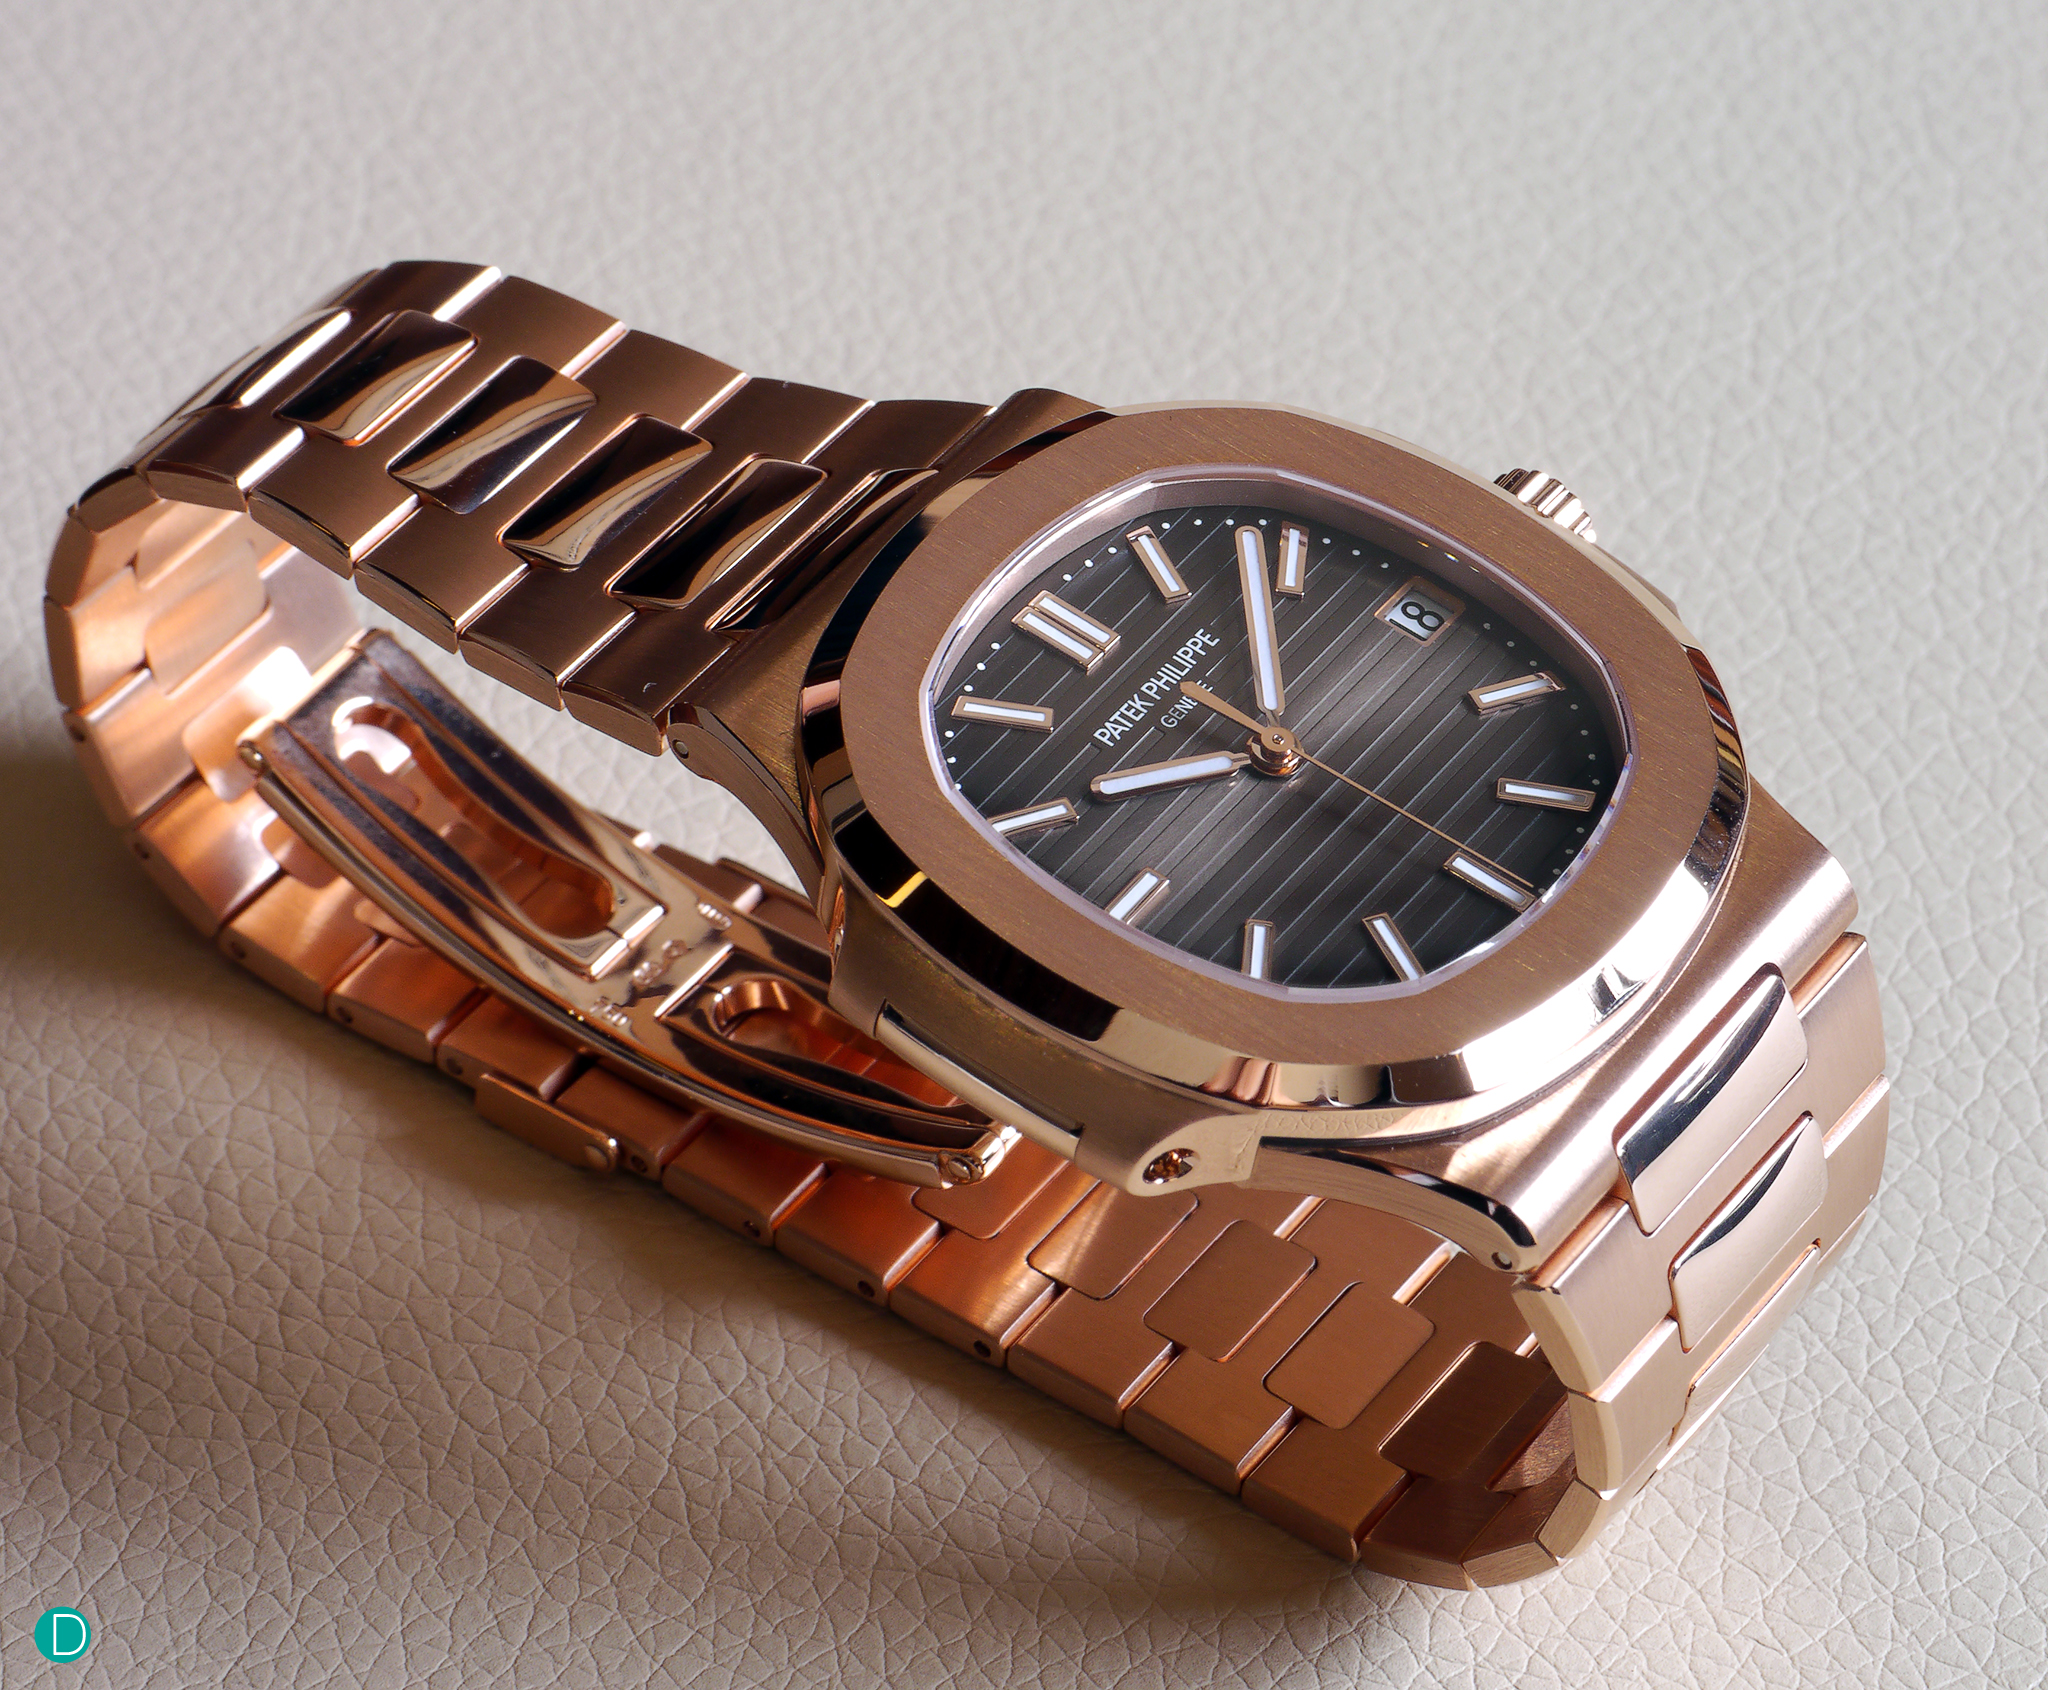 The Nautilus, Reference 5711, in rose gold.